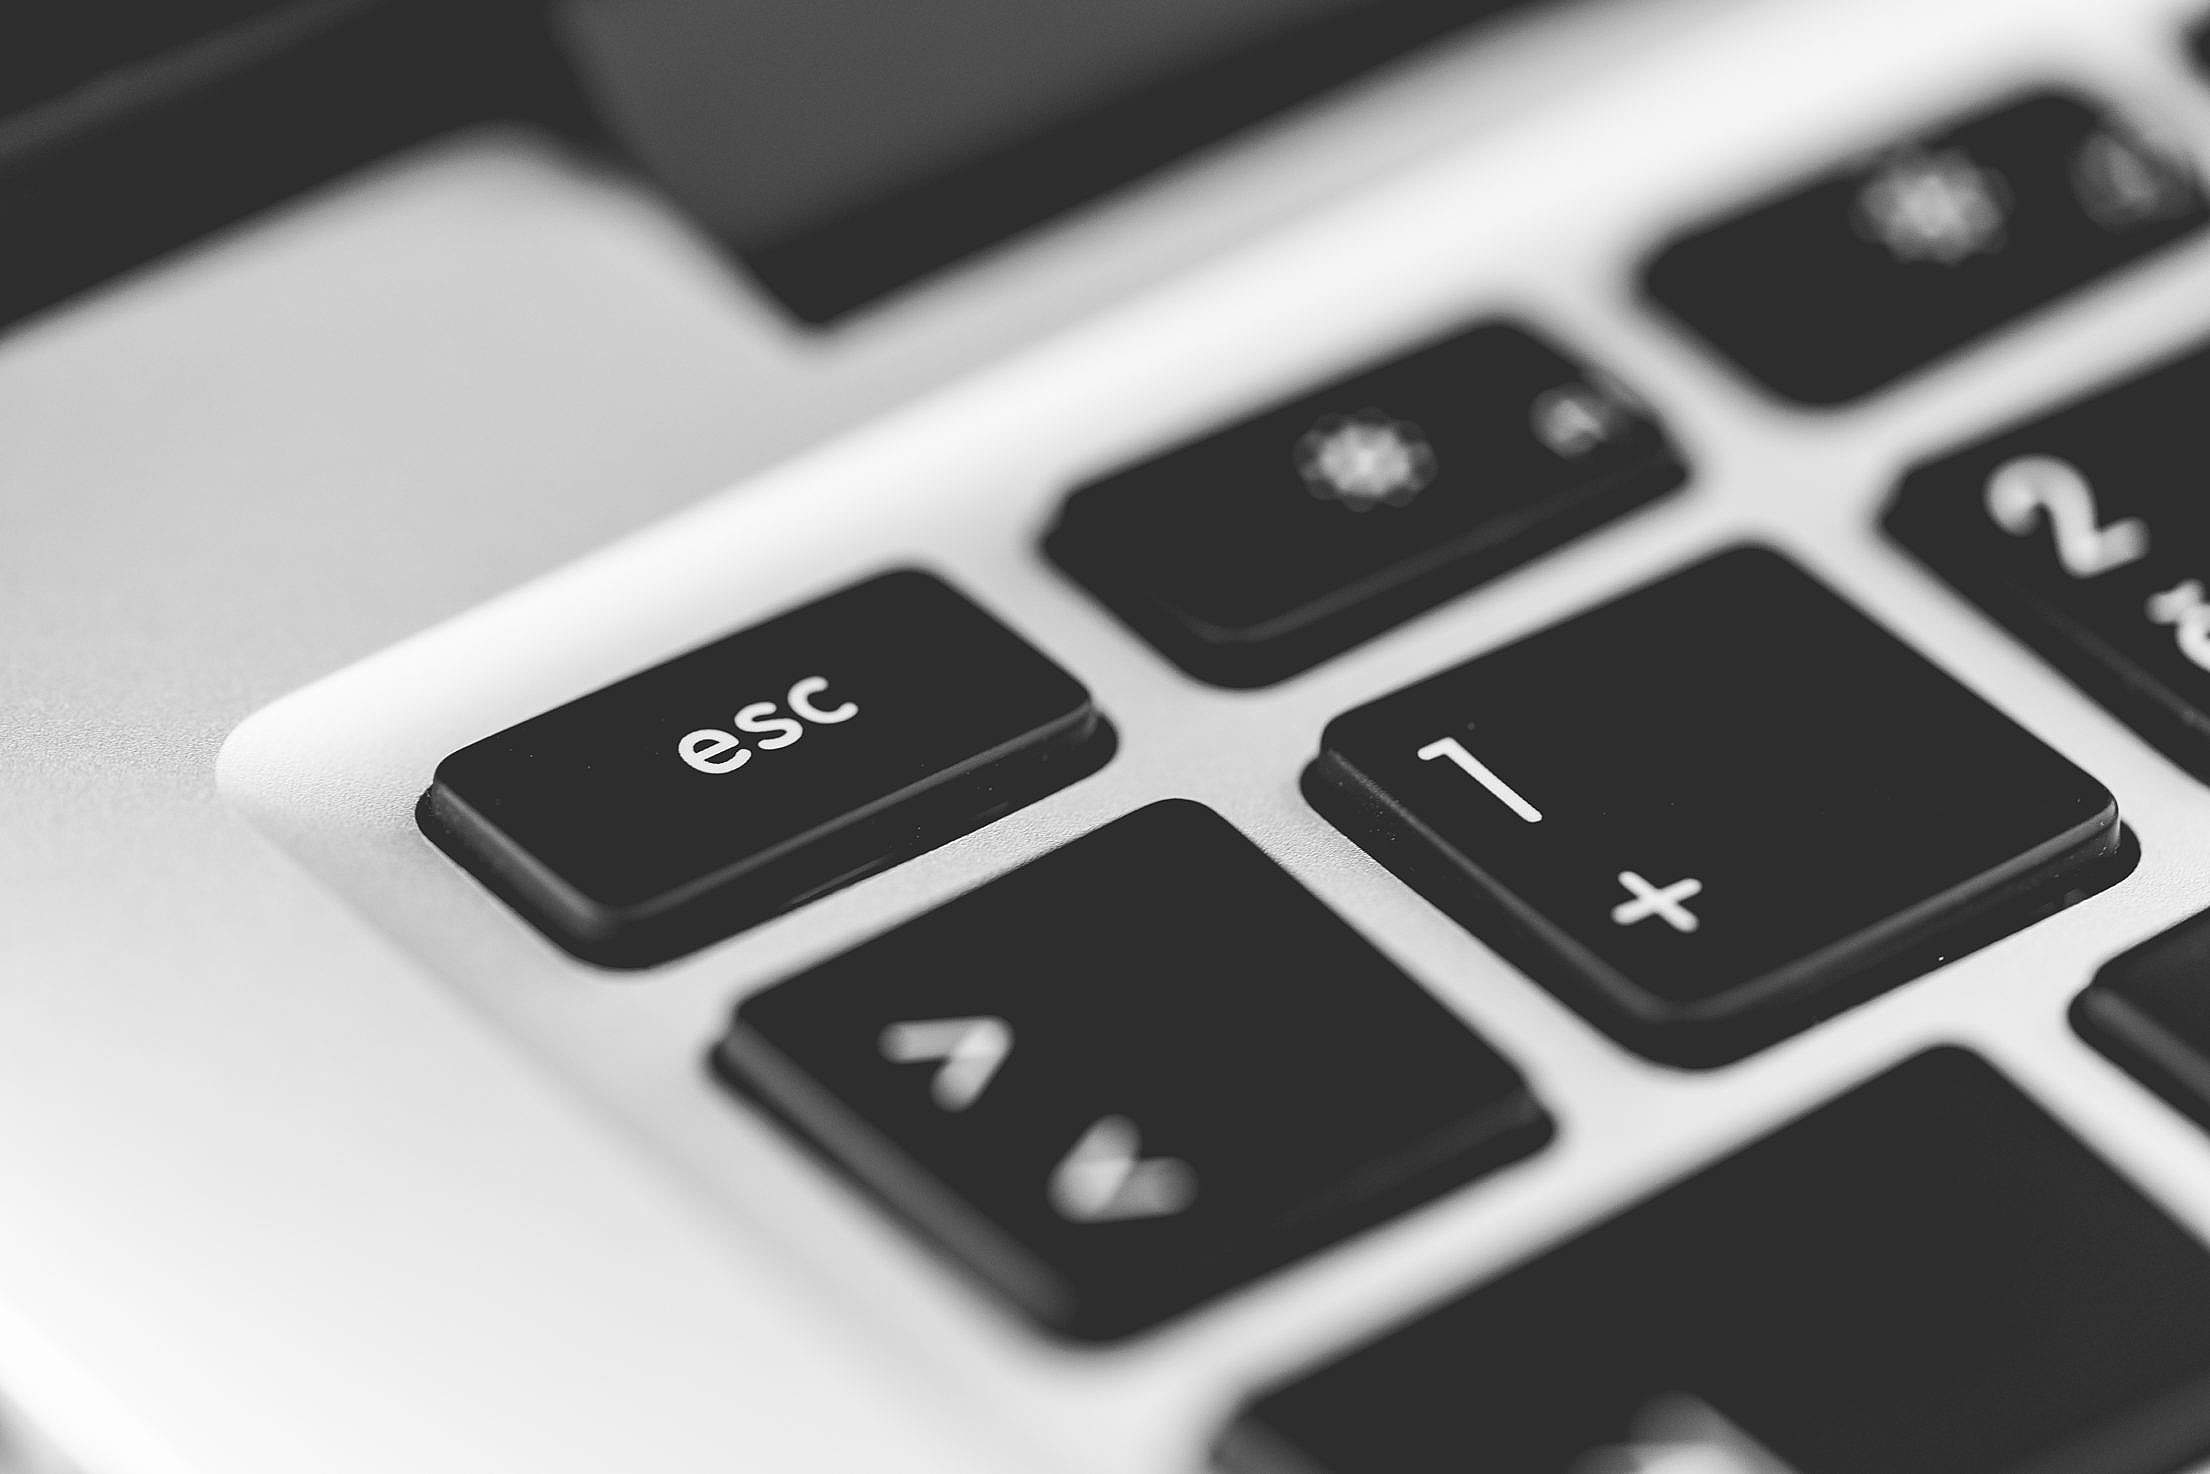 Escape Key Laptop Keyboard Close Up Free Stock Photo